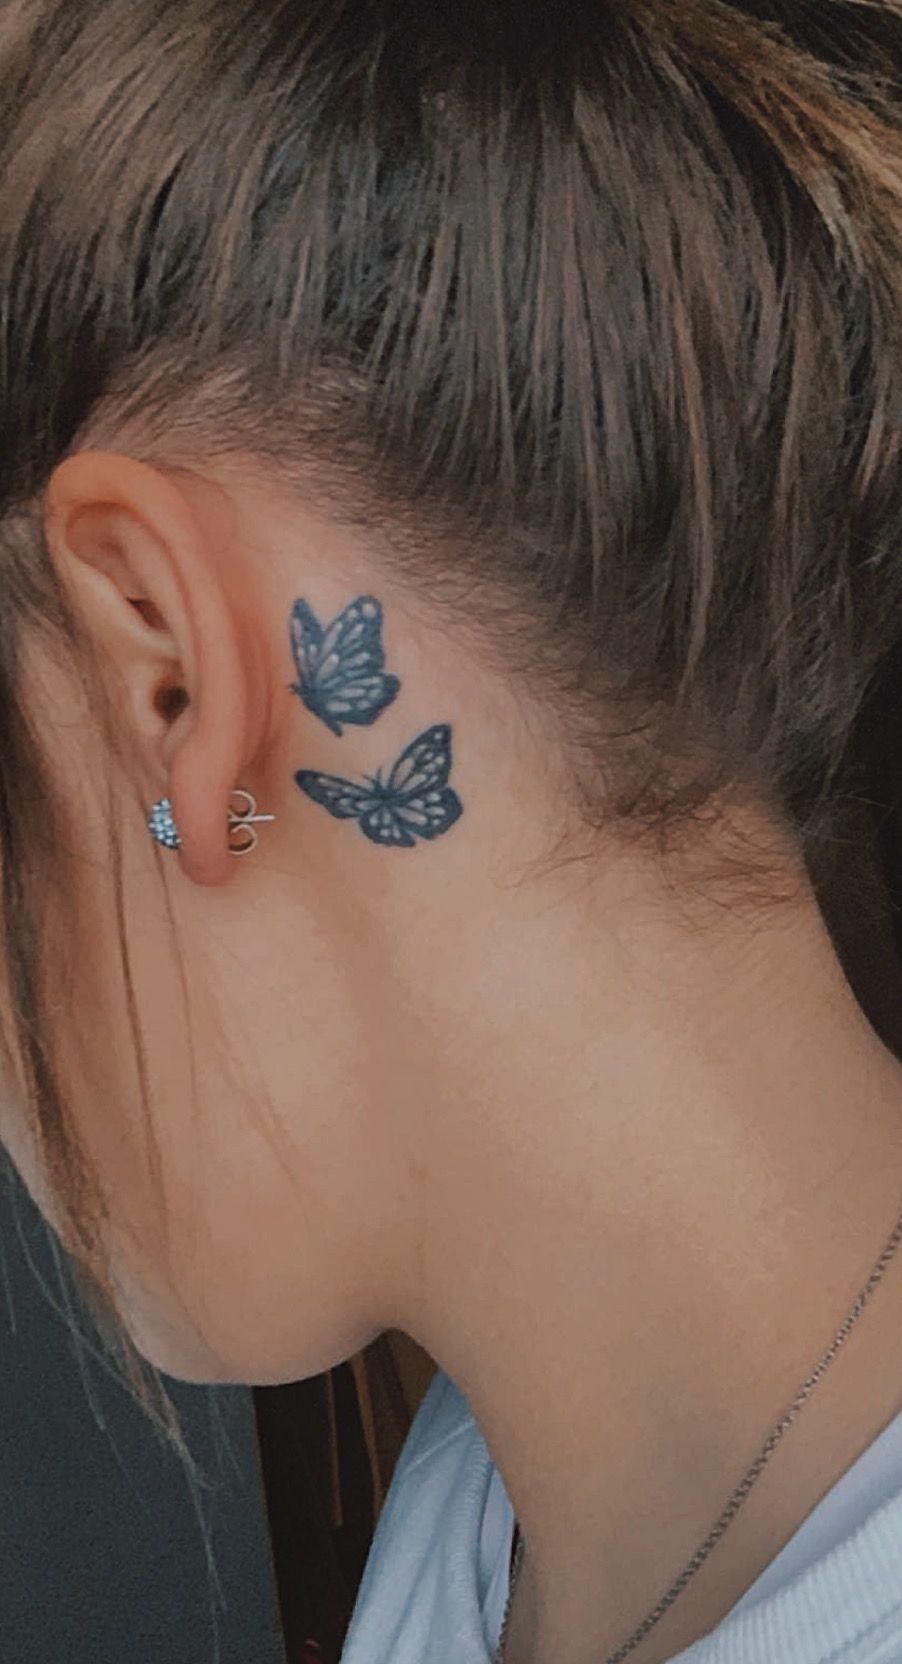 behind the ear, small tattoo, butterfly, black&white